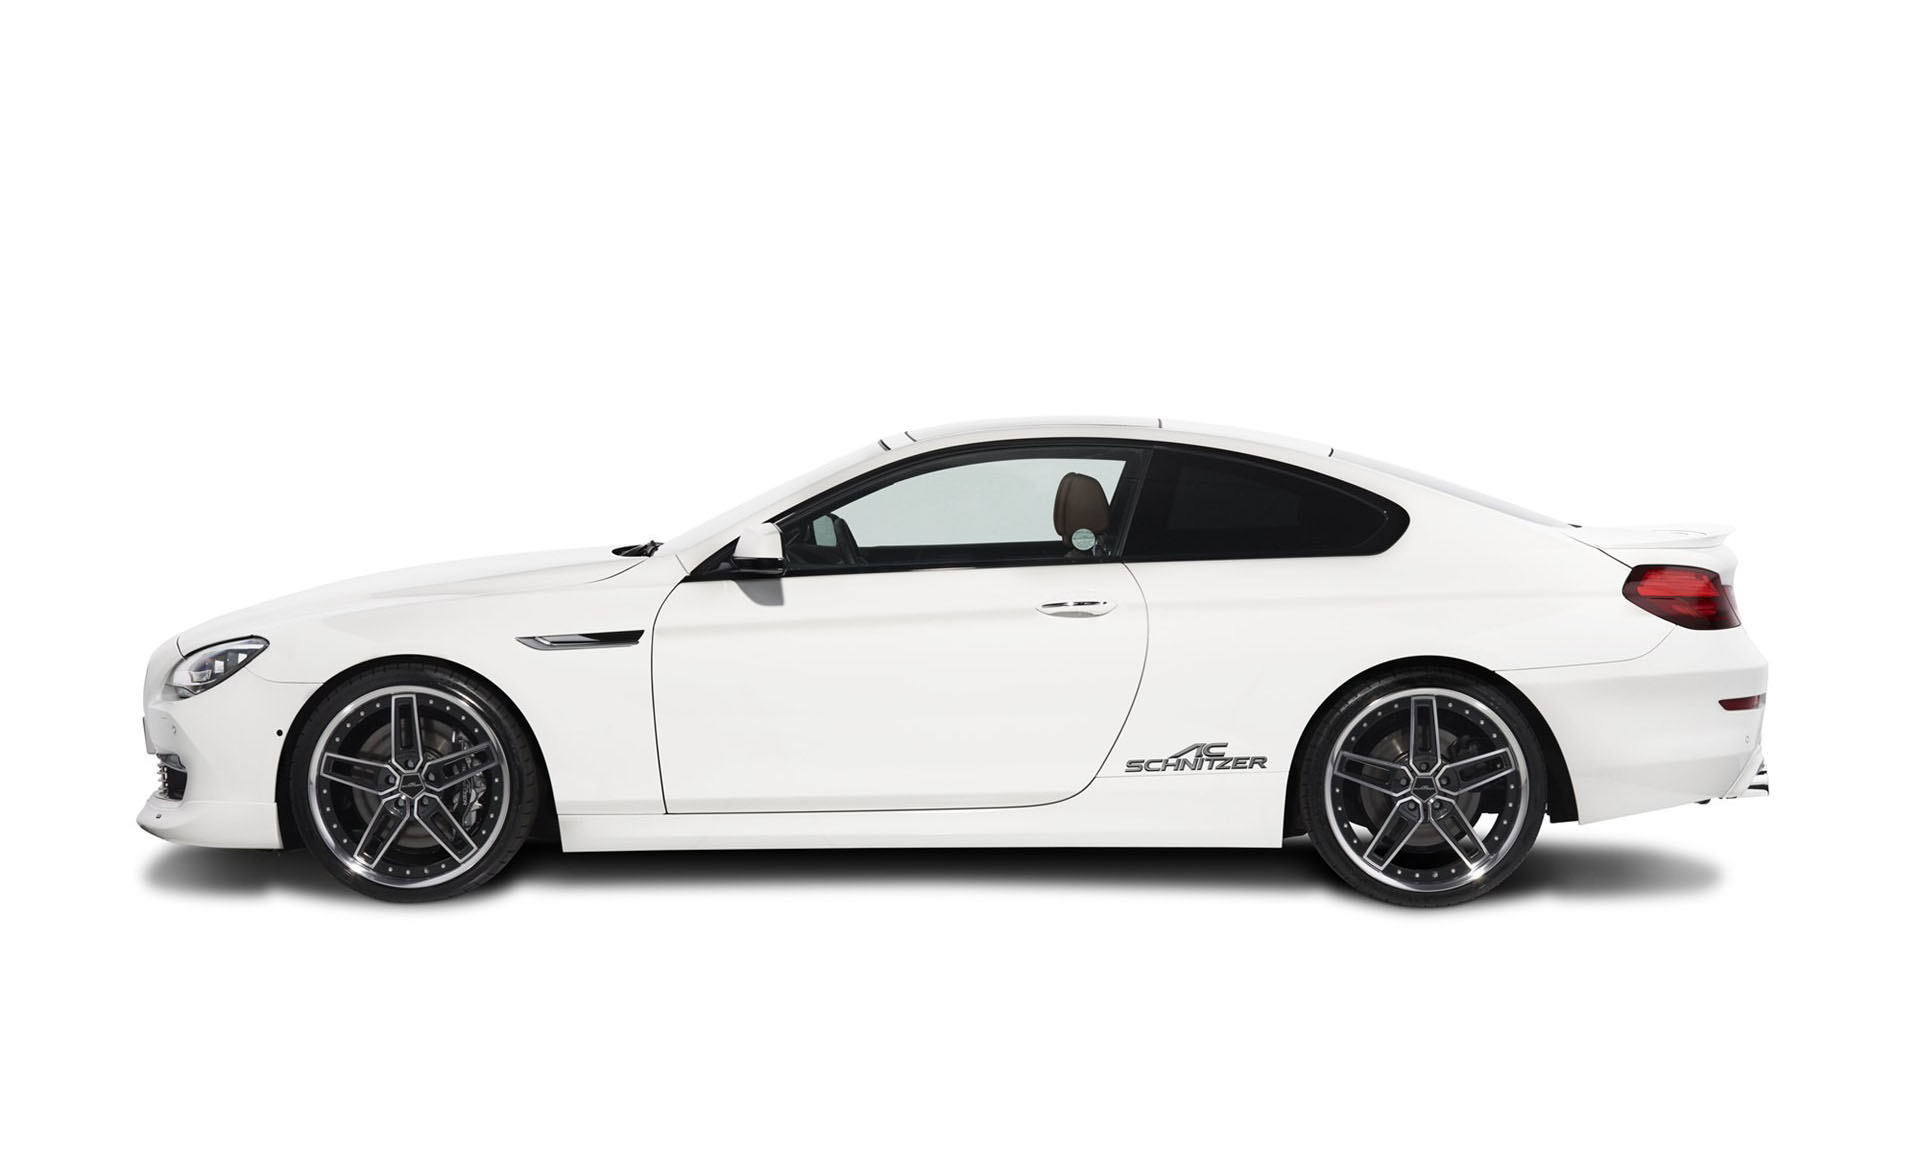 F13 BMW 6 Series Coupe AC Schnitzer